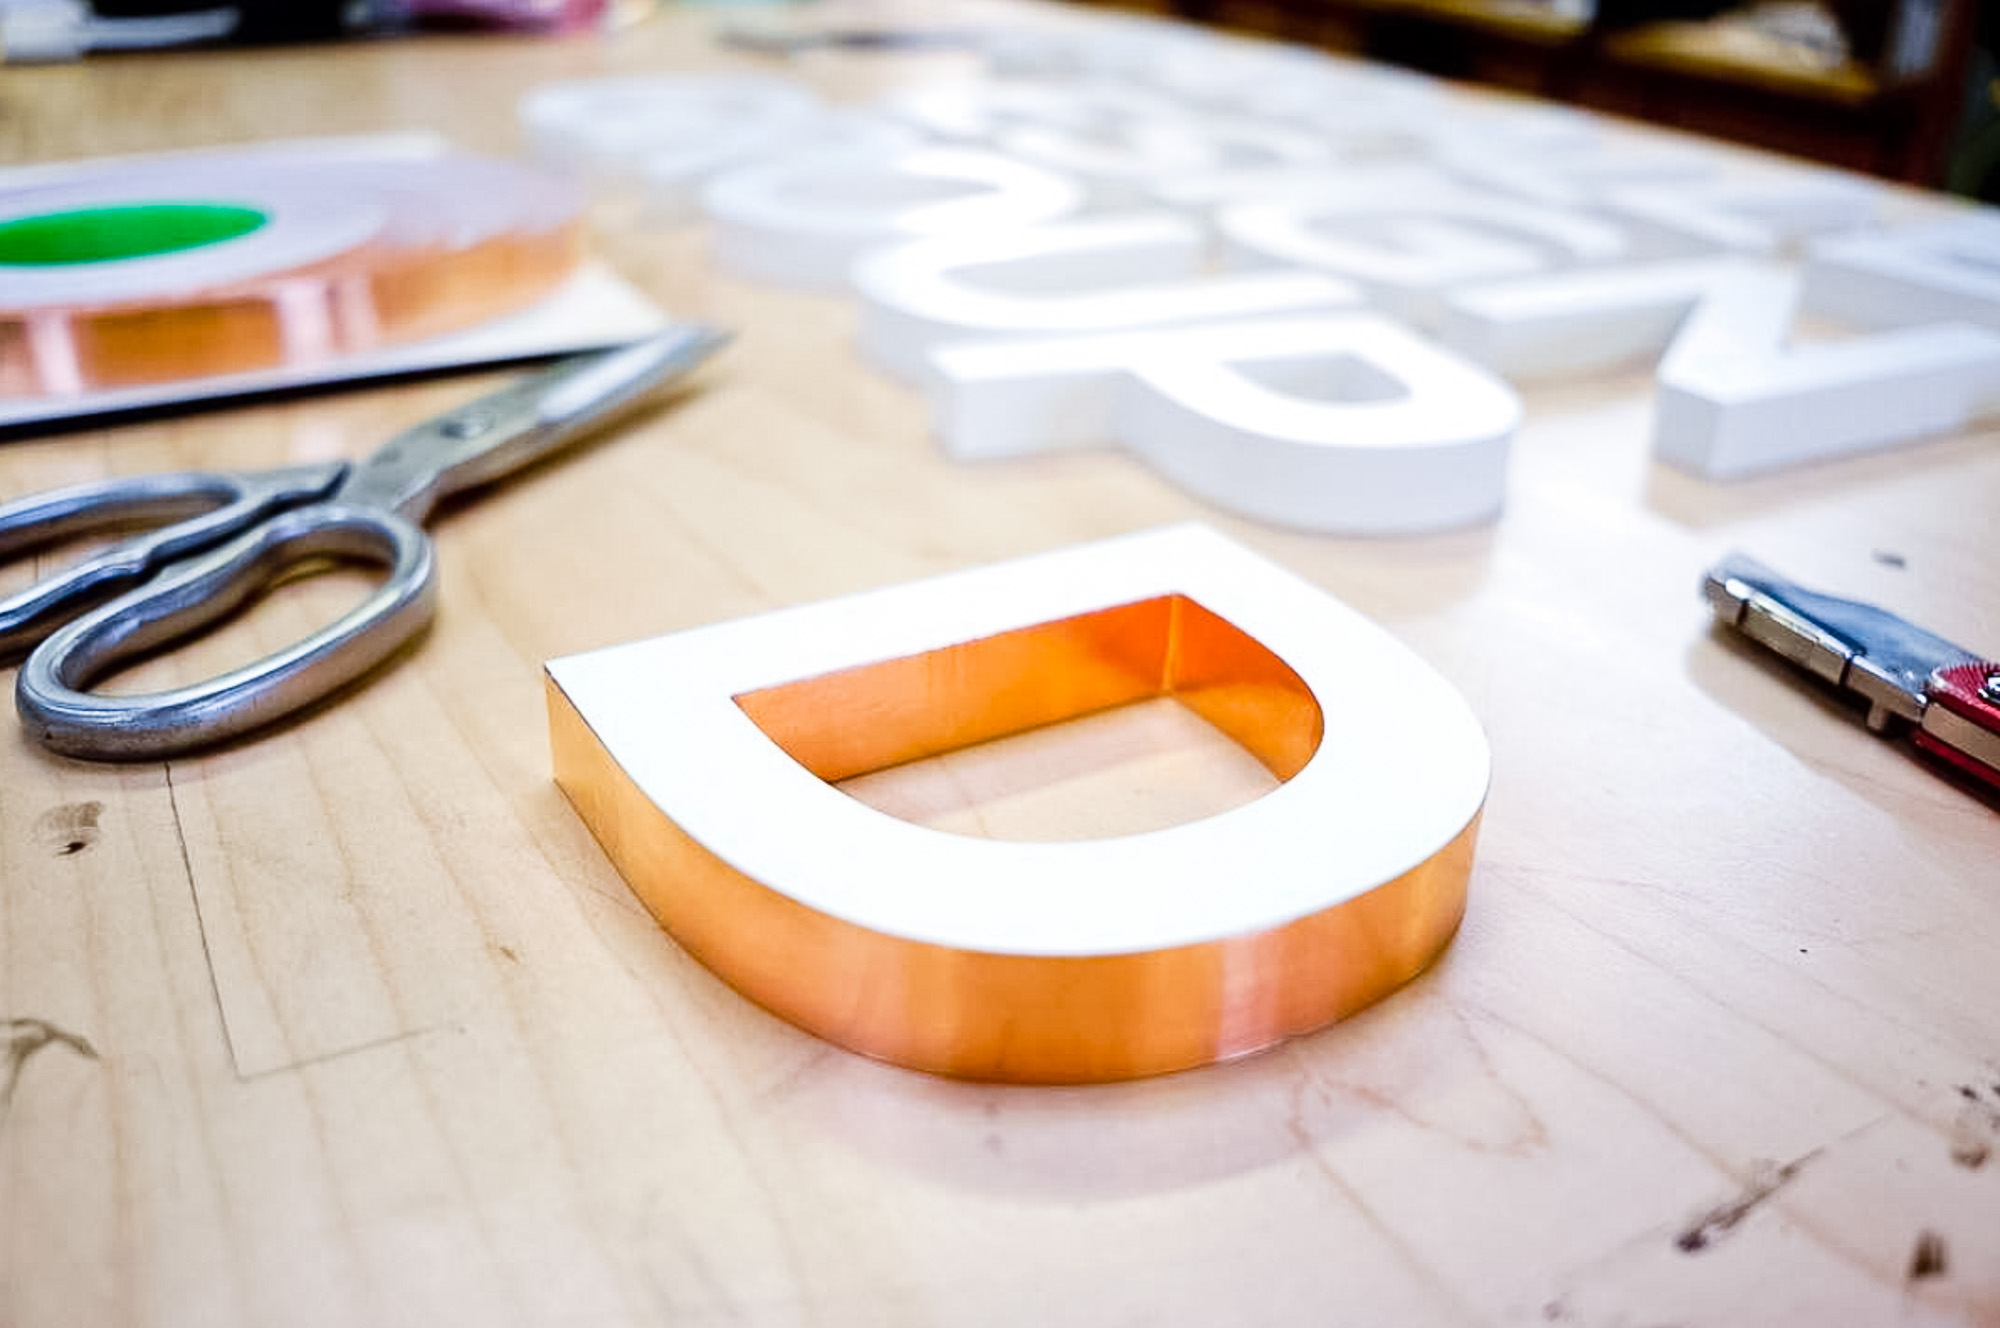 White letters with copper edges for Parallel Design Group, a commercial interior design firm based in Indianapolis, IN.